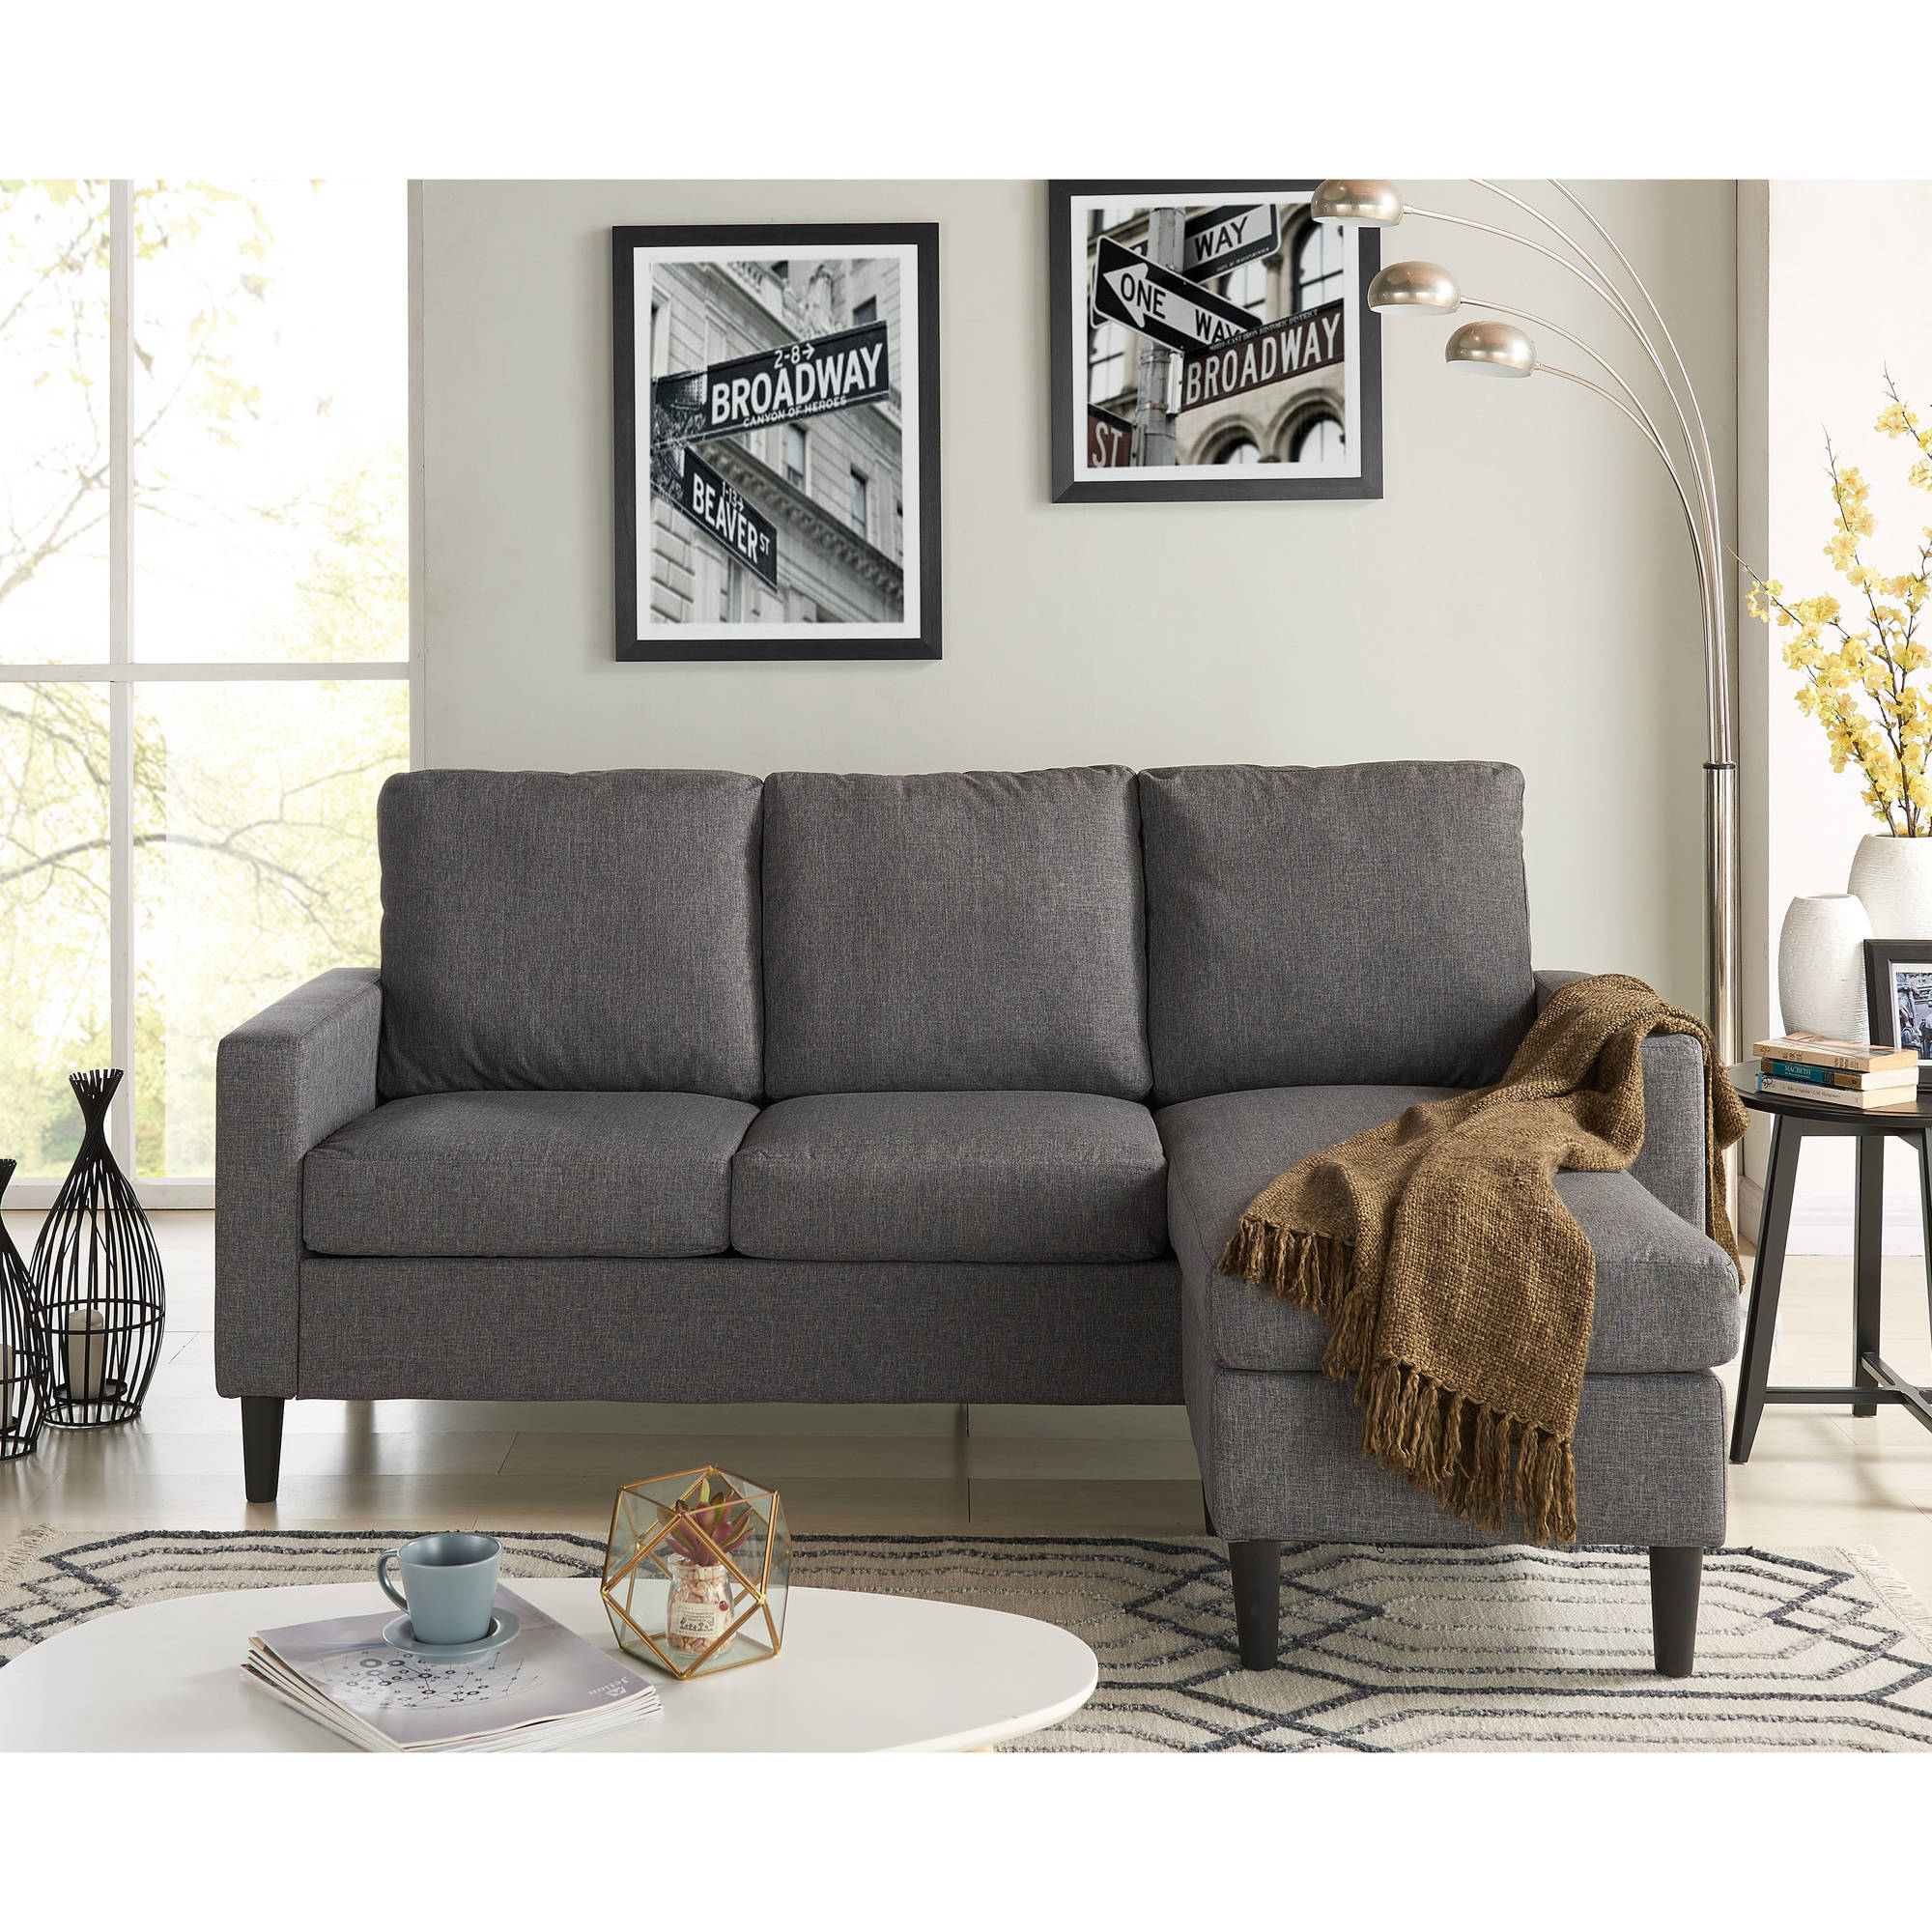 Mainstays Apartment Reversible Sectional